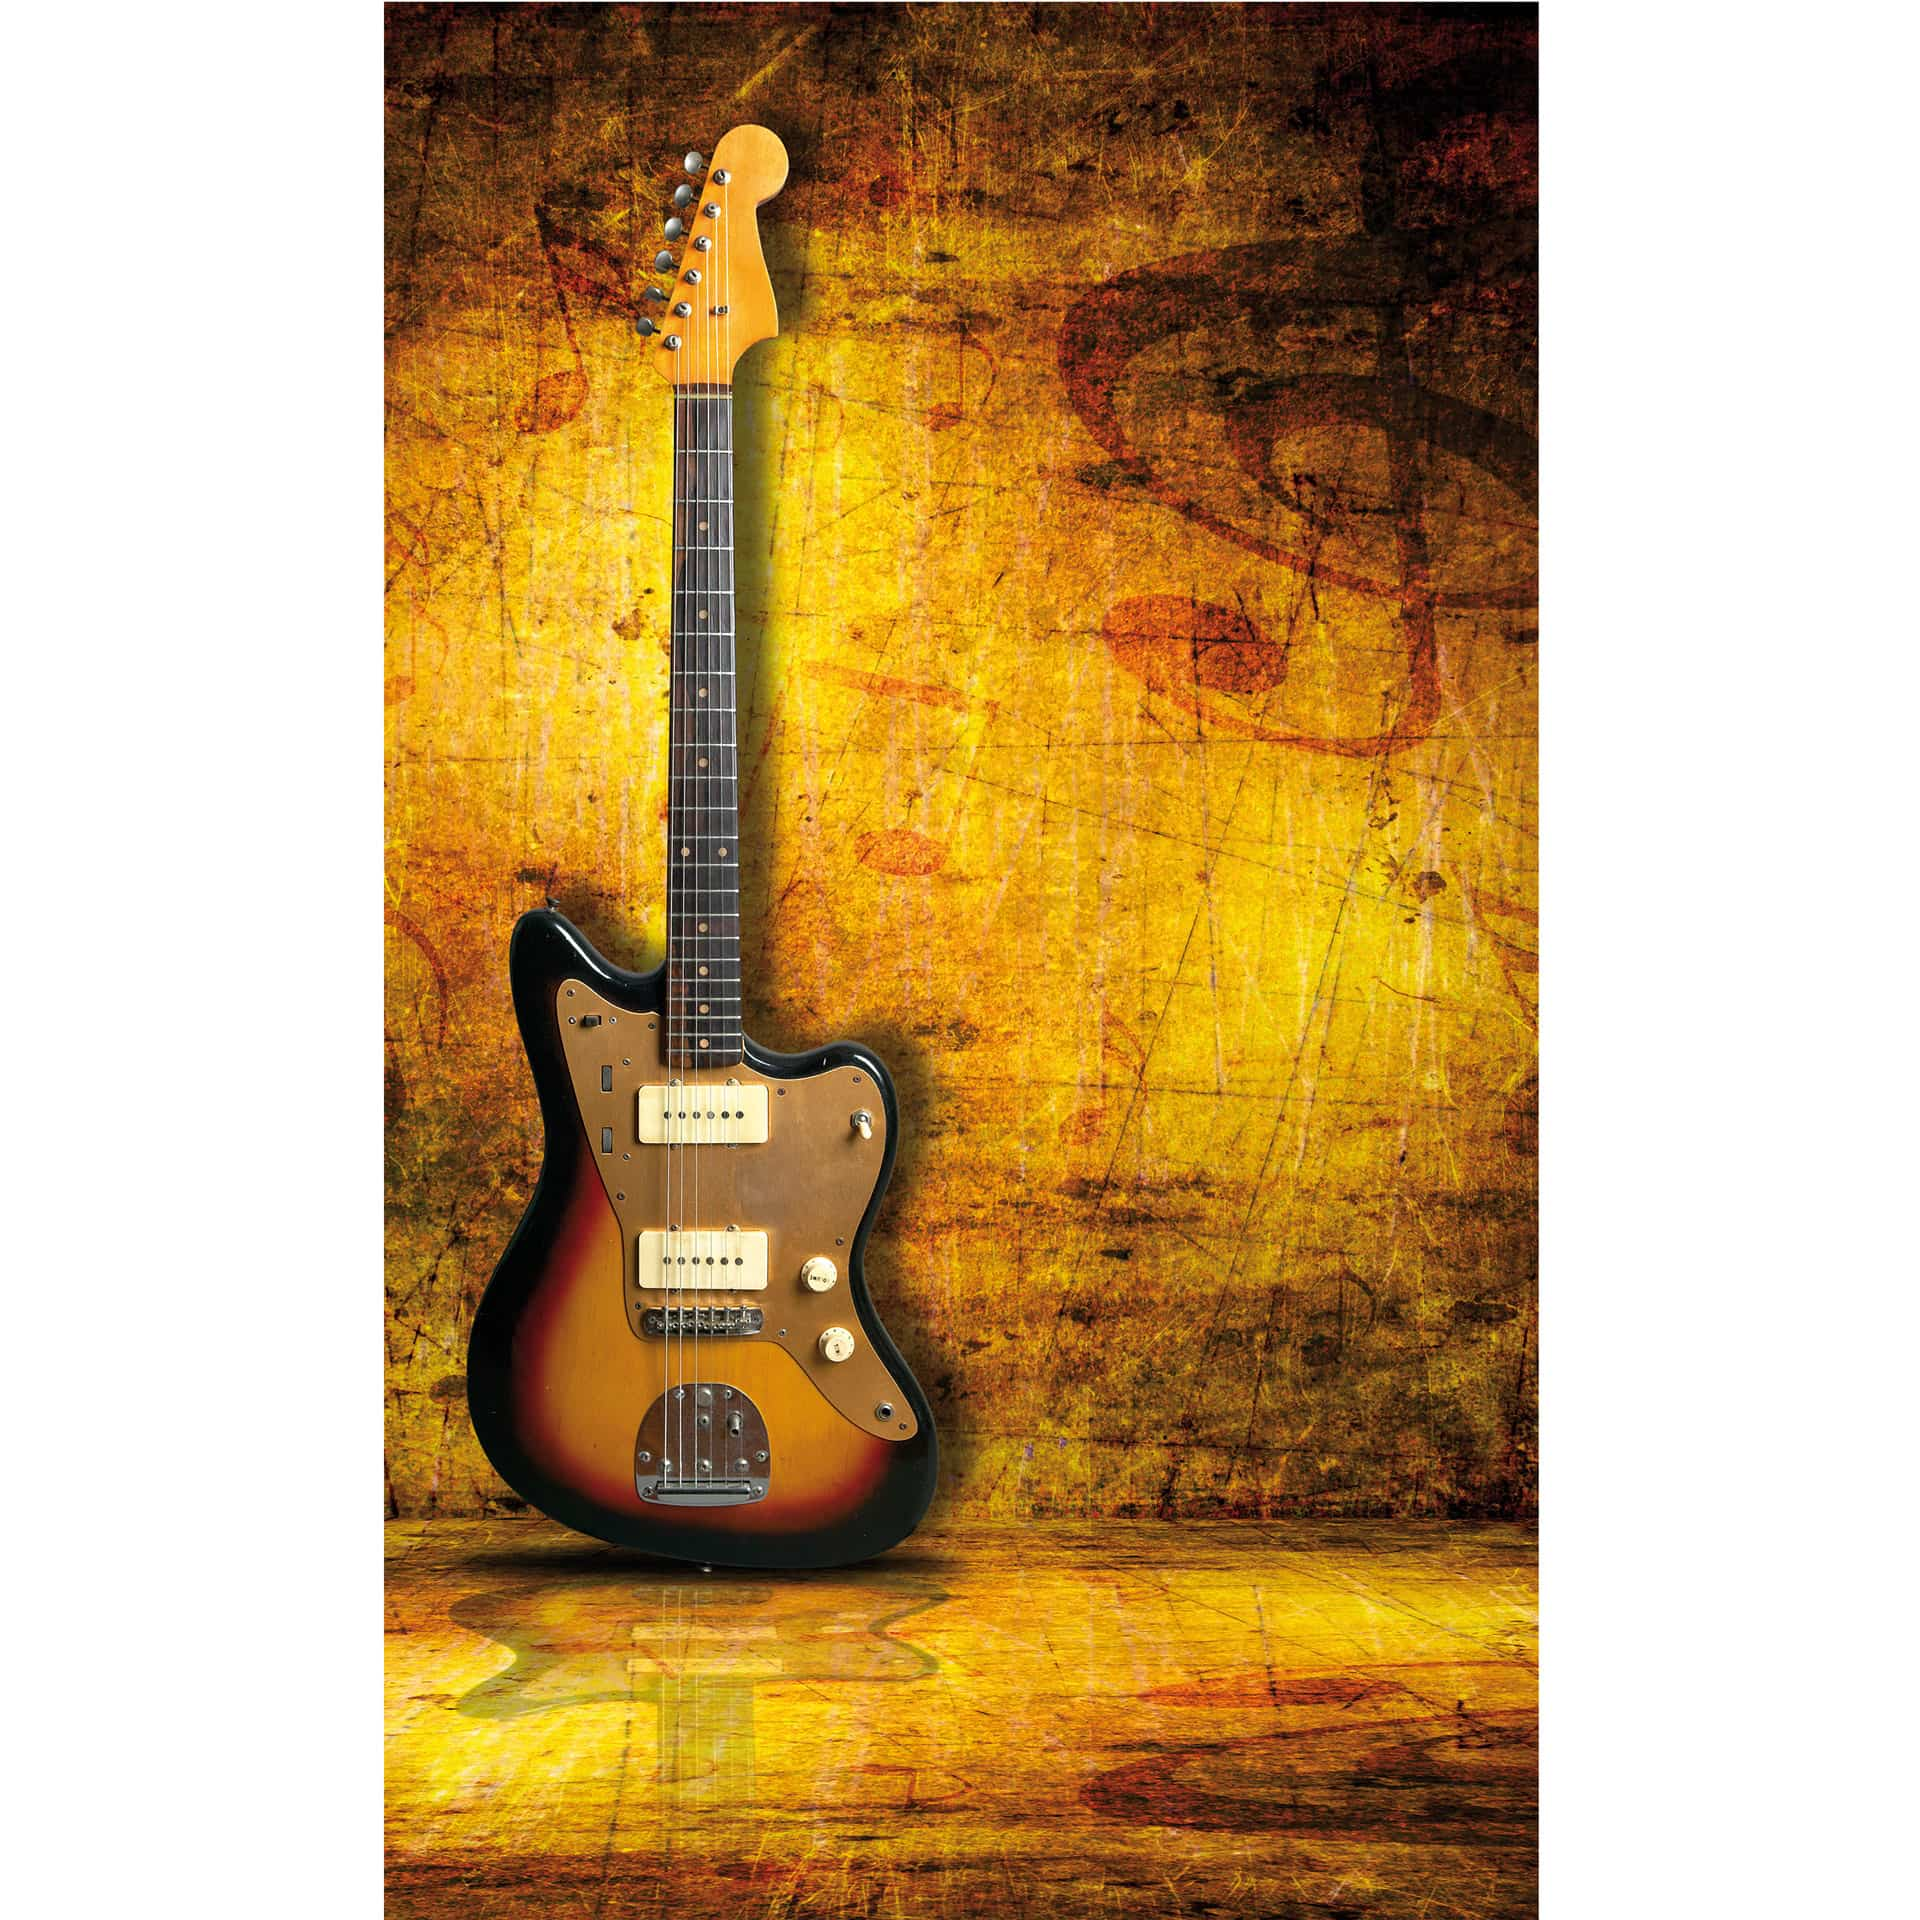 Beautiful Guitar Metal Wall Art Photos - Wall Art Collections ...